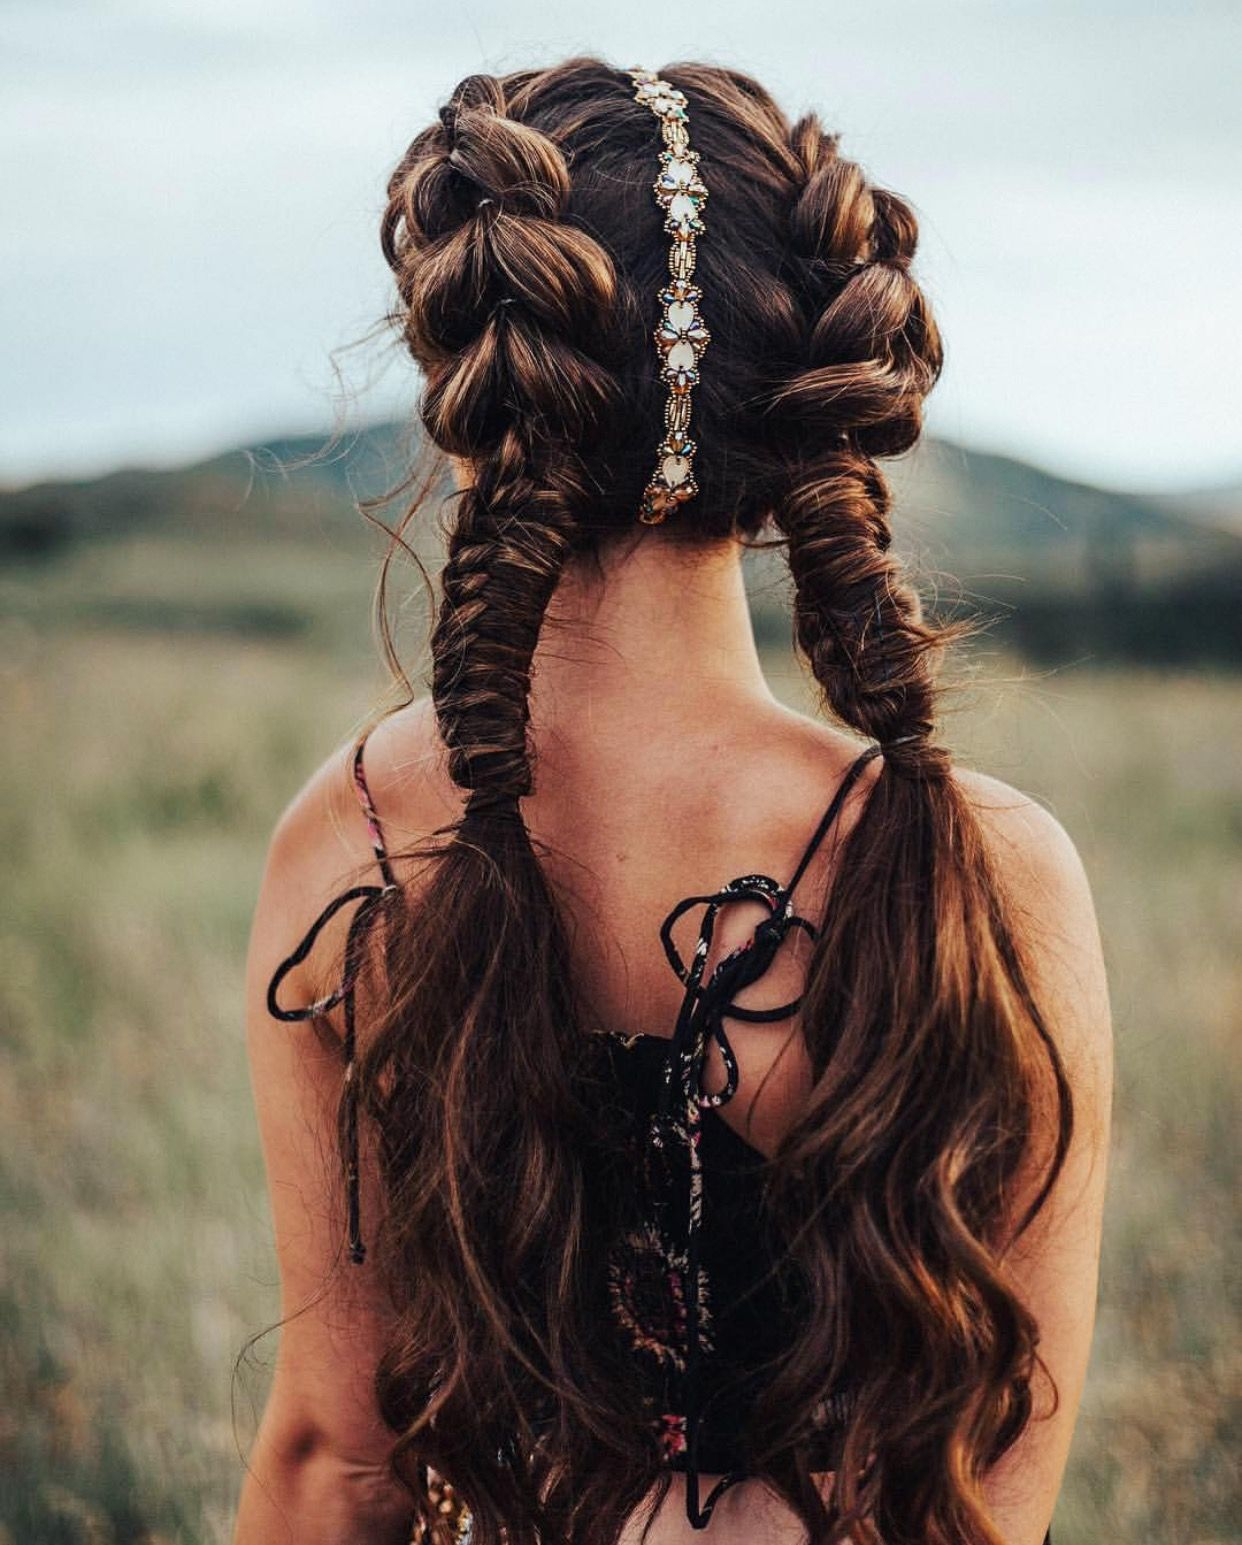 Like what you see follow me for more nhairofficial hair